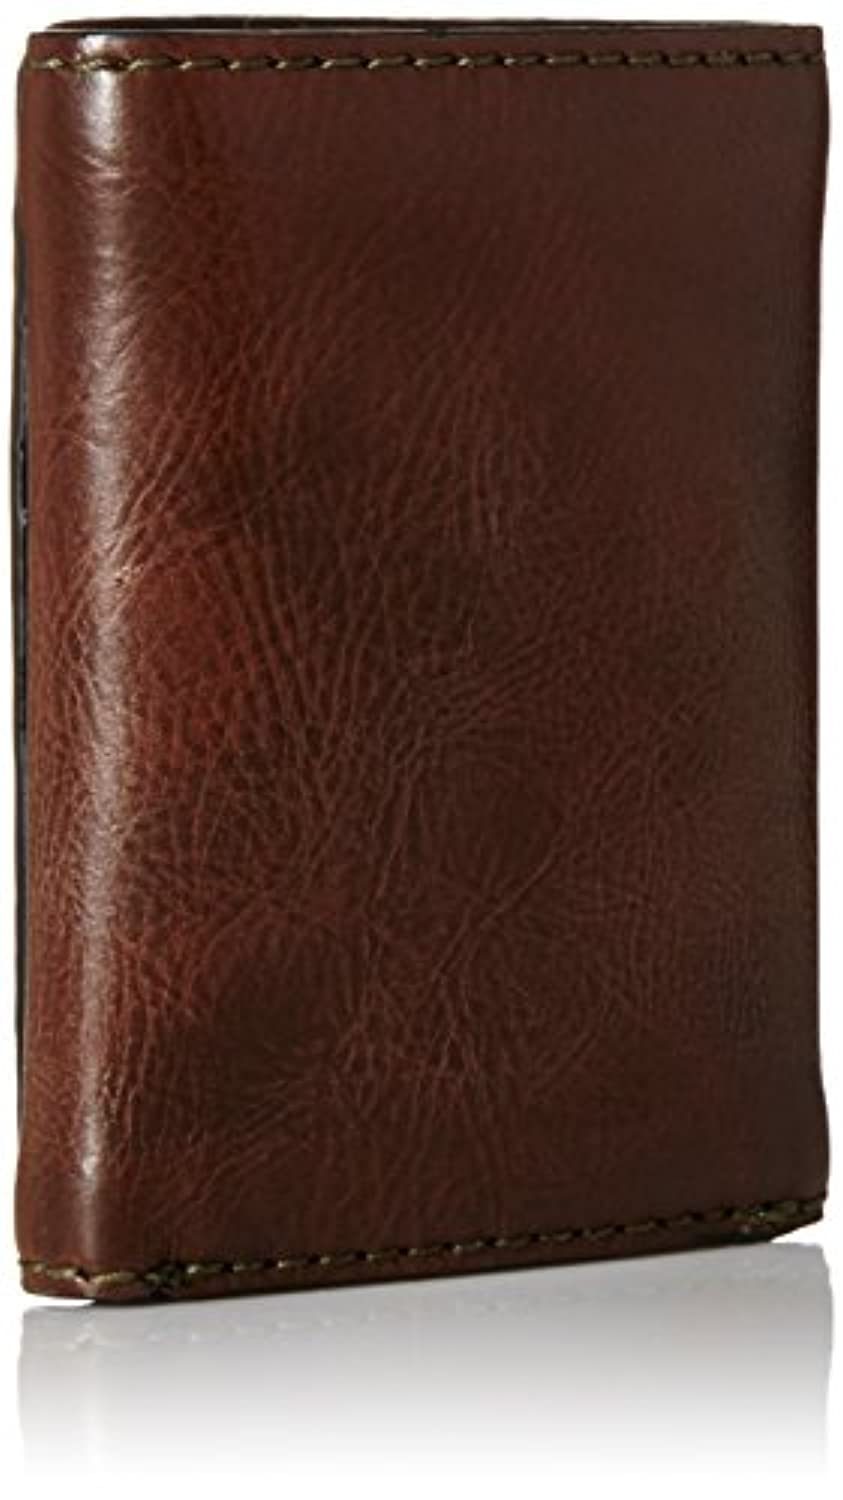 Classier: Buy Levi's Levi's Men's RFID Trifold Wallet-Sleek and Slim Includes Id Window and Credit Card Holder